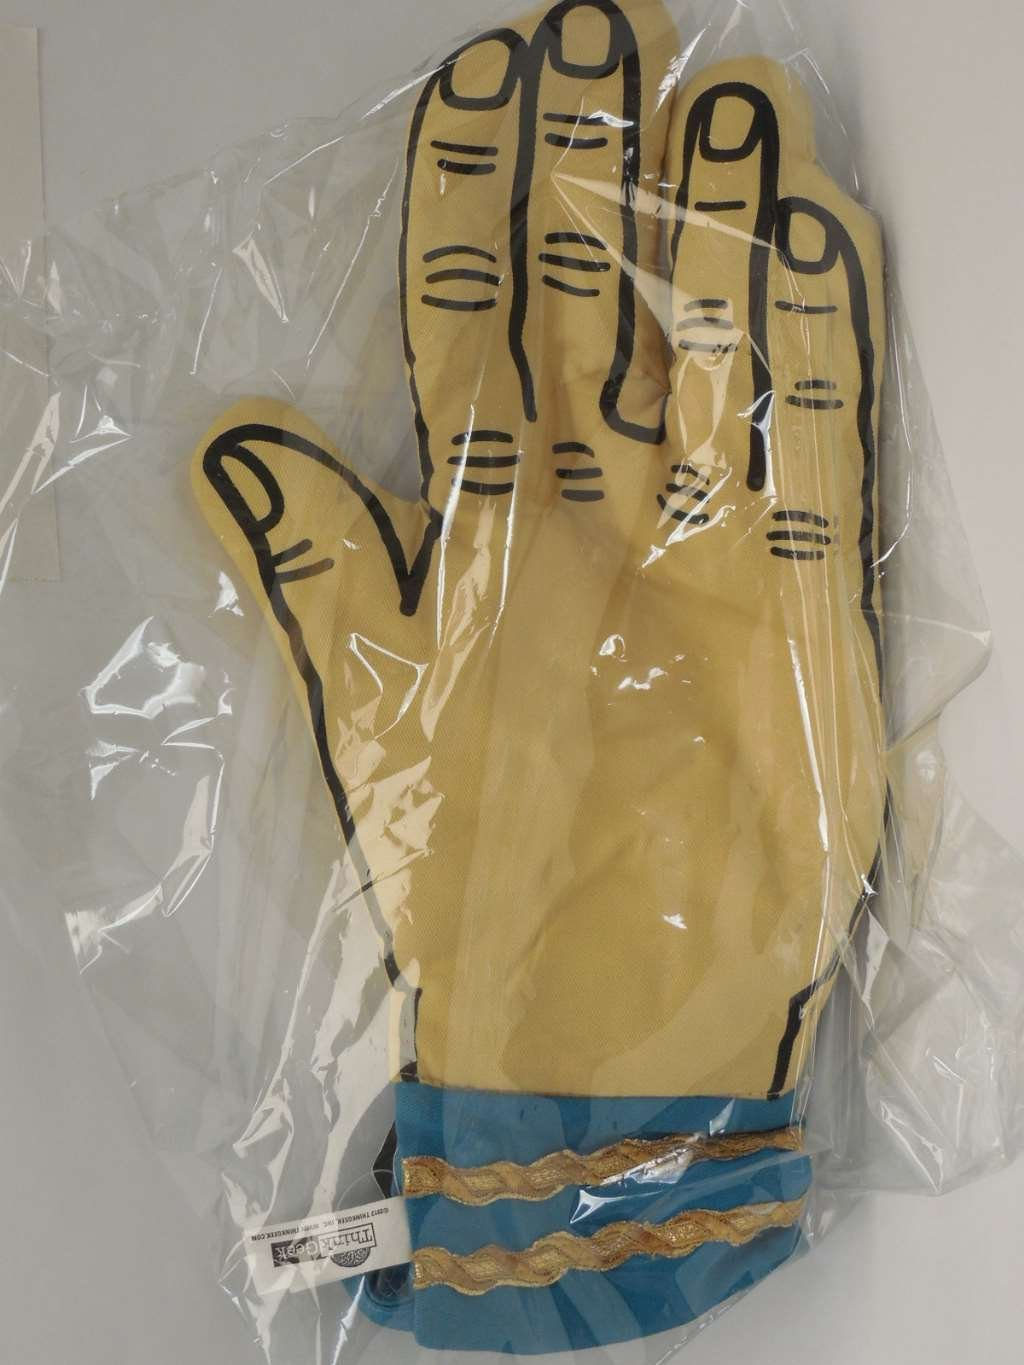 Star Trek Spock Oven Mitt - Live Long And Don't Burn Your Hands